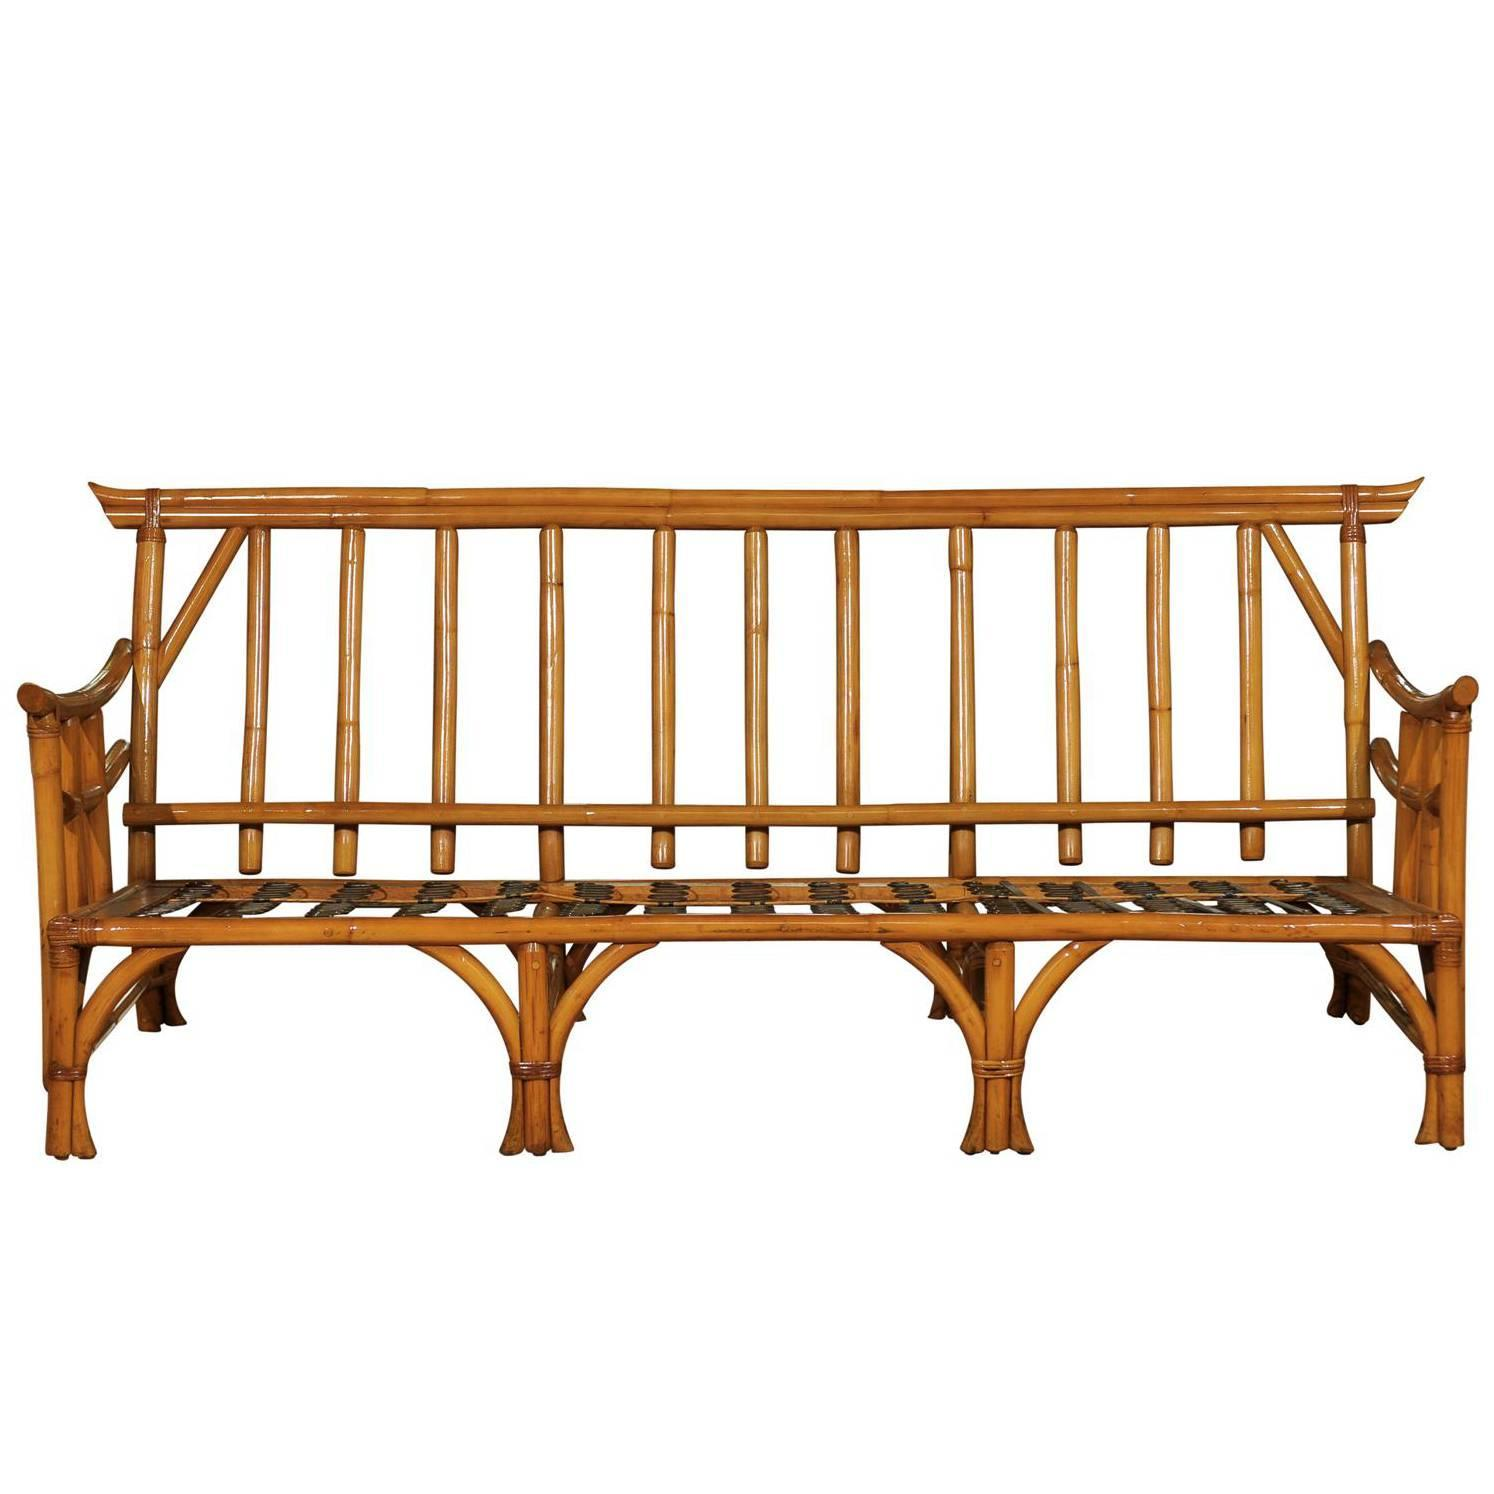 Used Cane Sofa For Sale In Bangalore: Magnificent Restored Vintage Rattan Pagoda Sofa For Sale